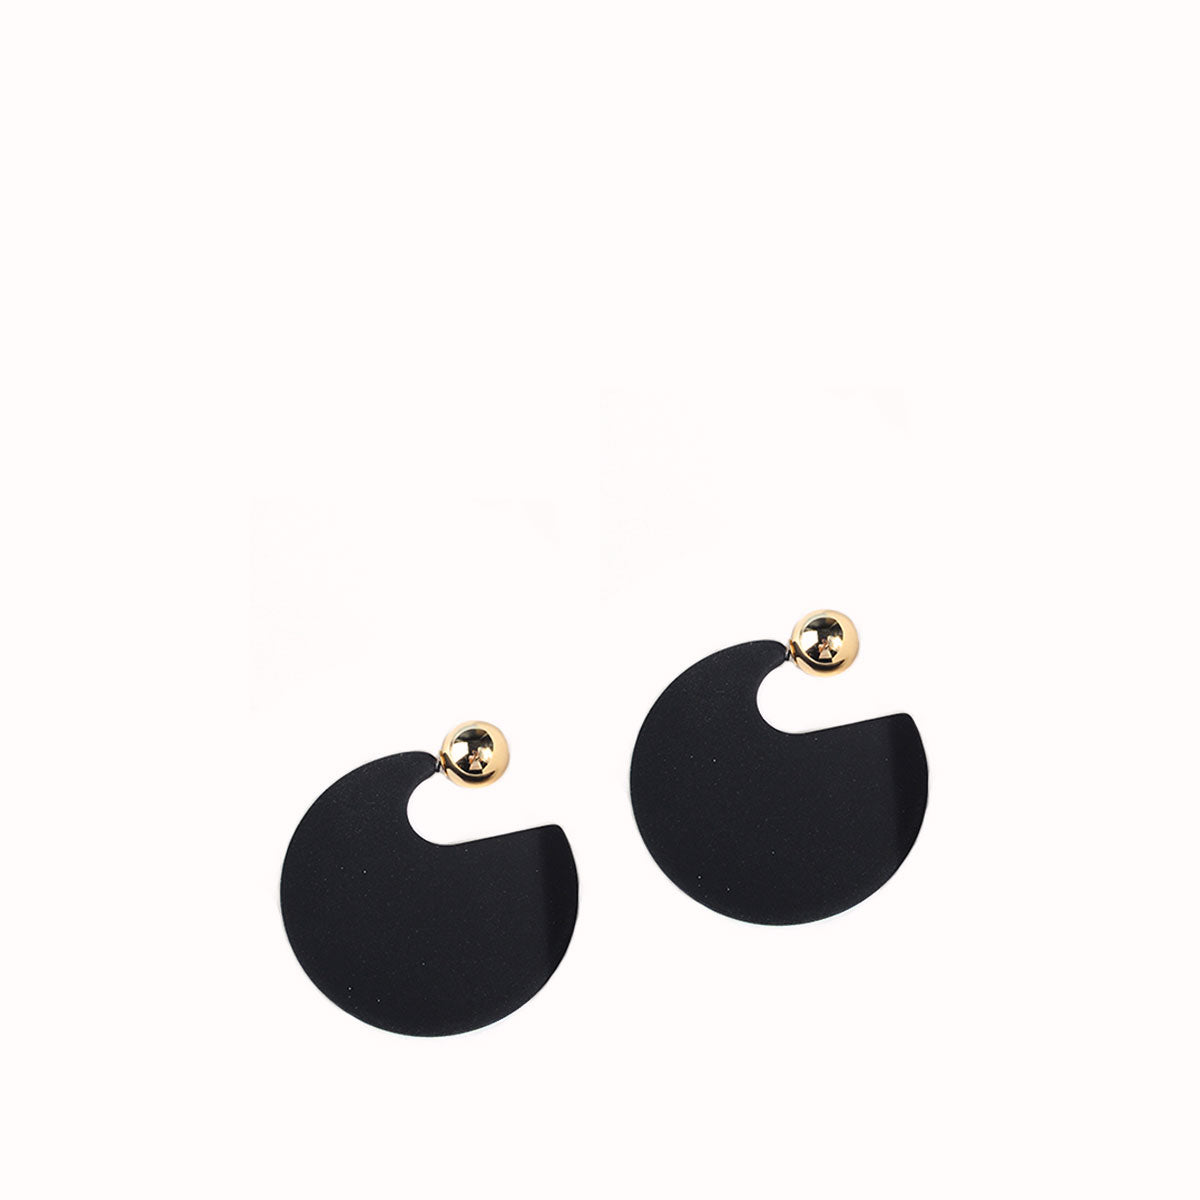 SAMANTHA ACRYLIC CIRCLE WITH GOLD BACK DROP EARRINGS